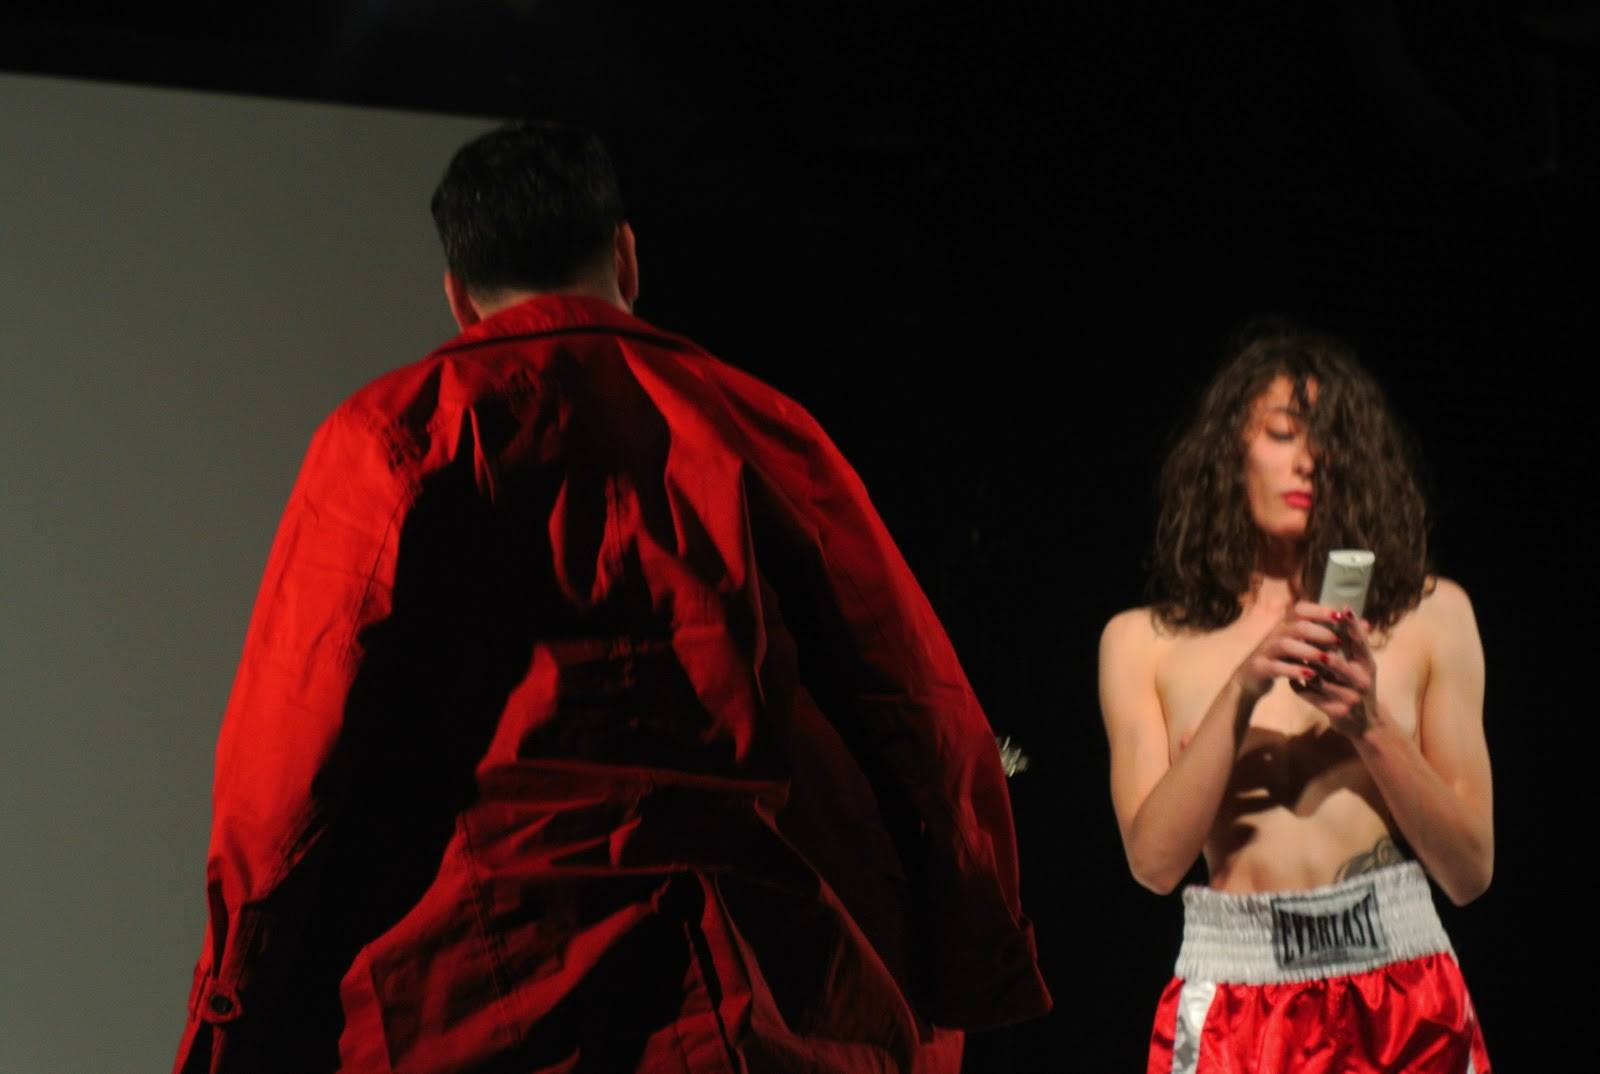 Antistatic Festival for Contemporary Dance and Performance